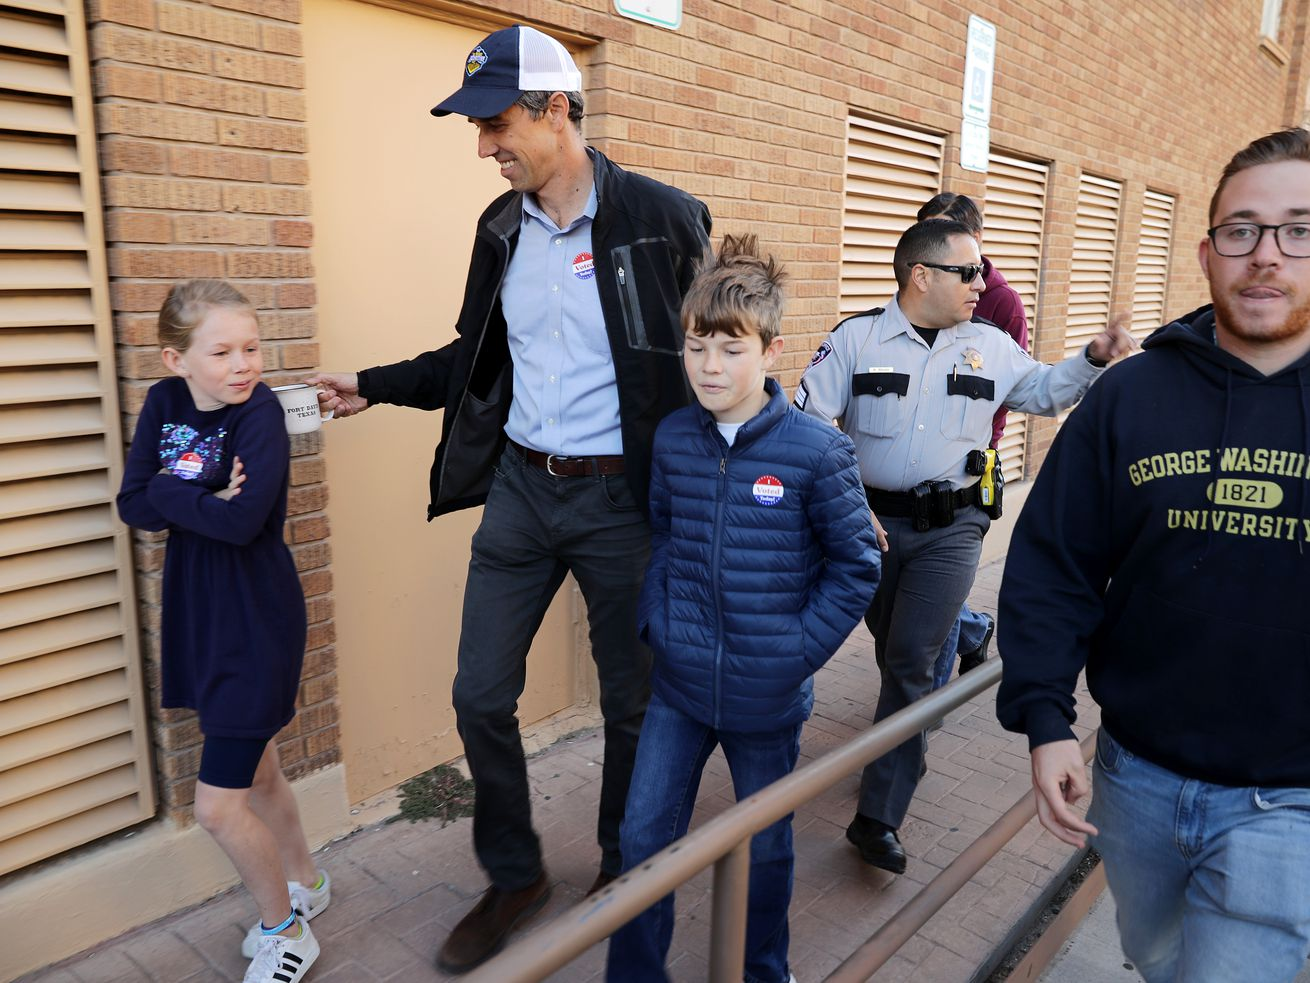 Beto O'Rourke and his children Molly (left) and Ulysses leave their neighborhood polling place after voting on November 6, 2018 in El Paso, Texas.